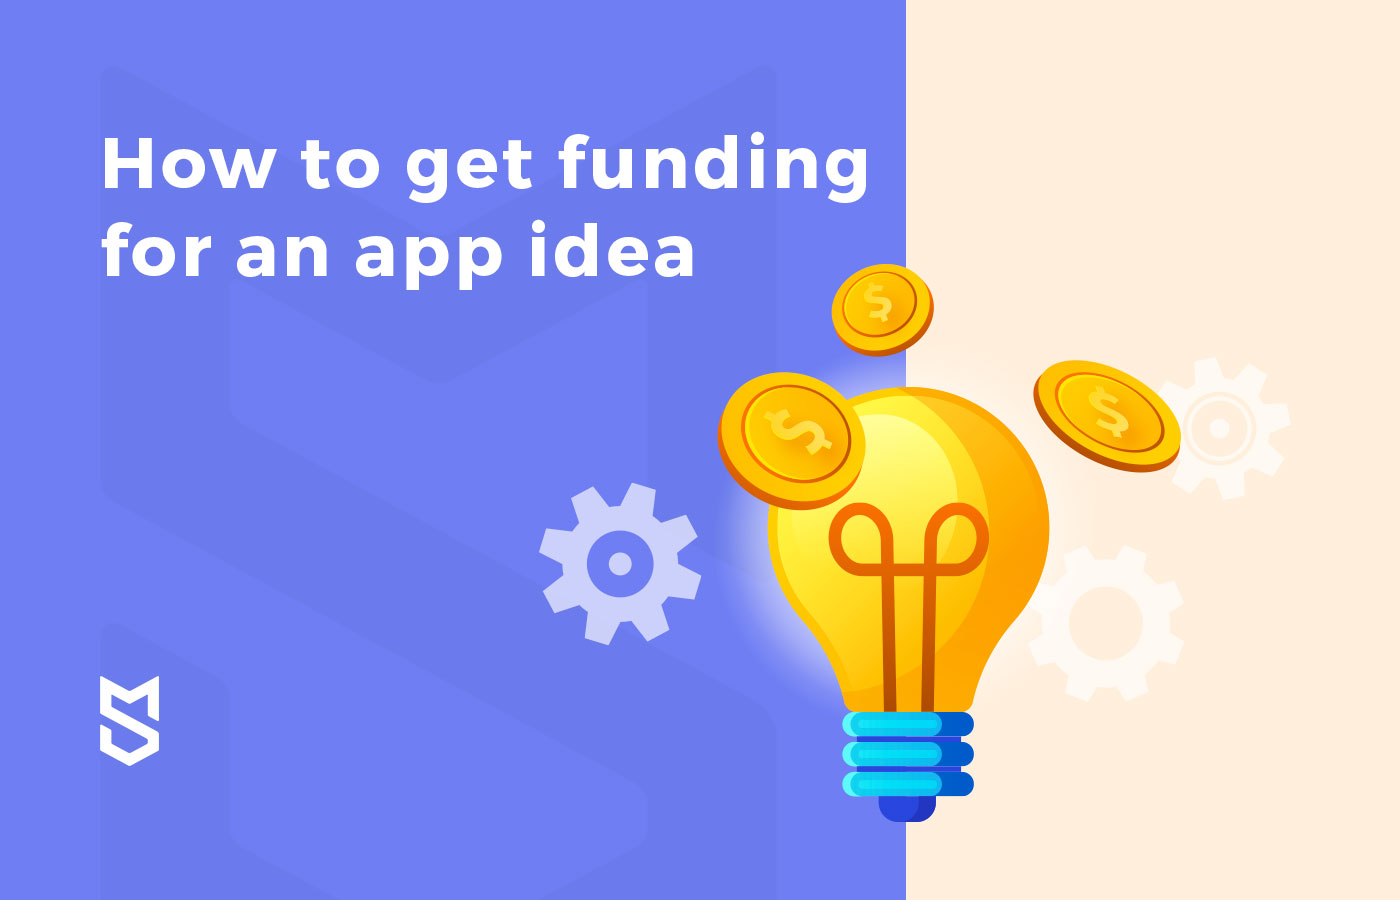 How to get funding for an app idea